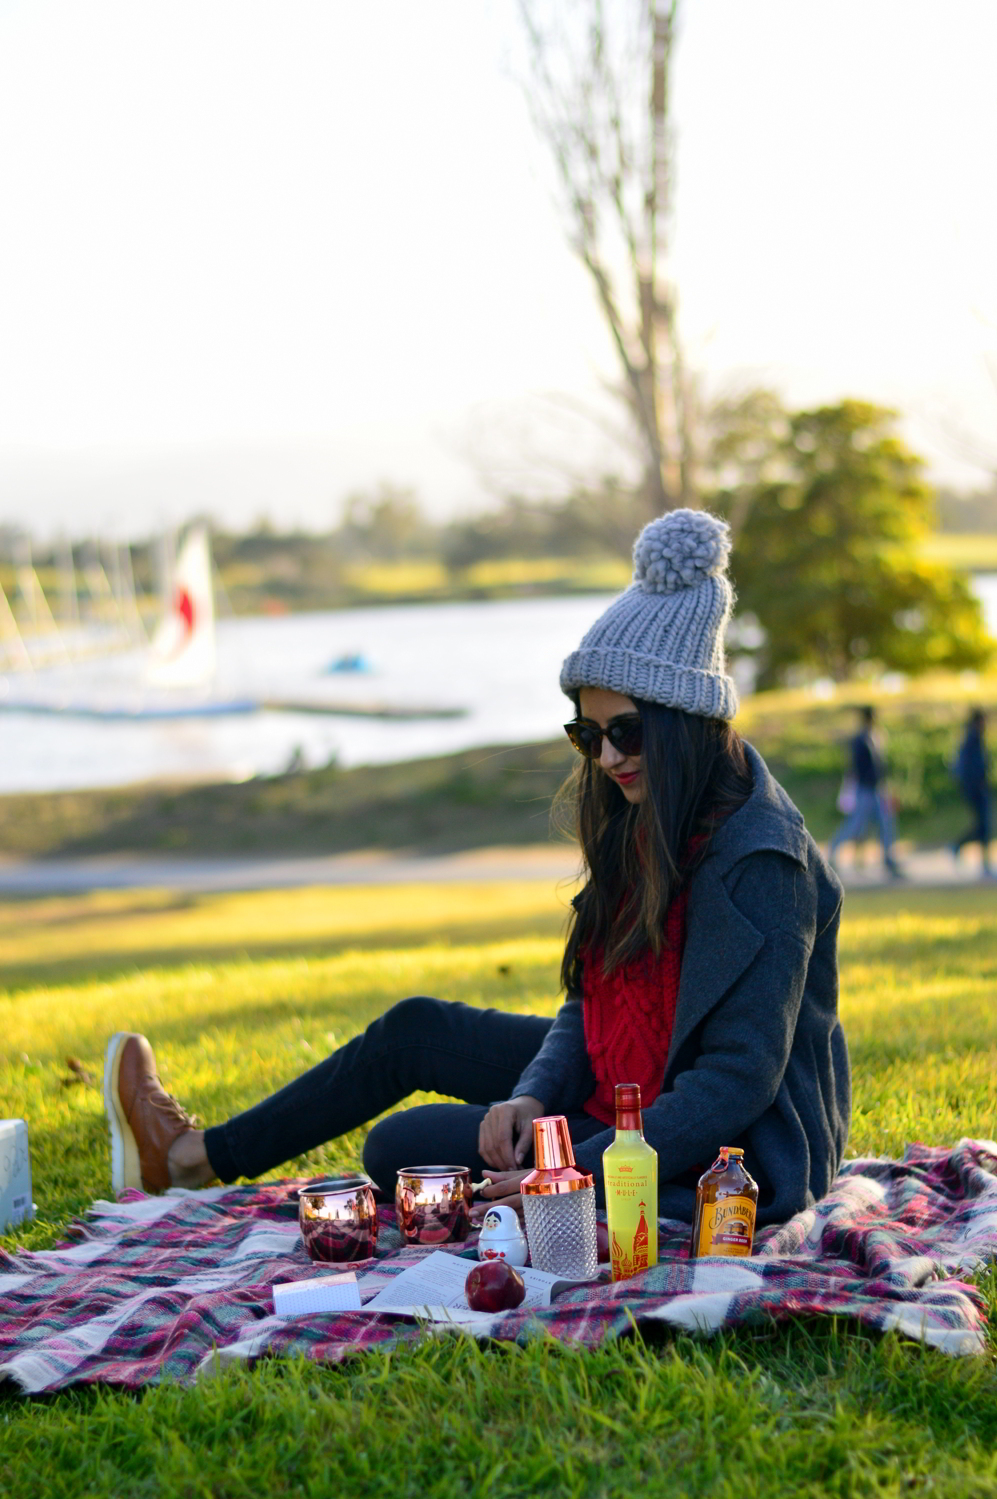 valentines-day-picnic-park-winter-outfit-style-blogger-fashion 1